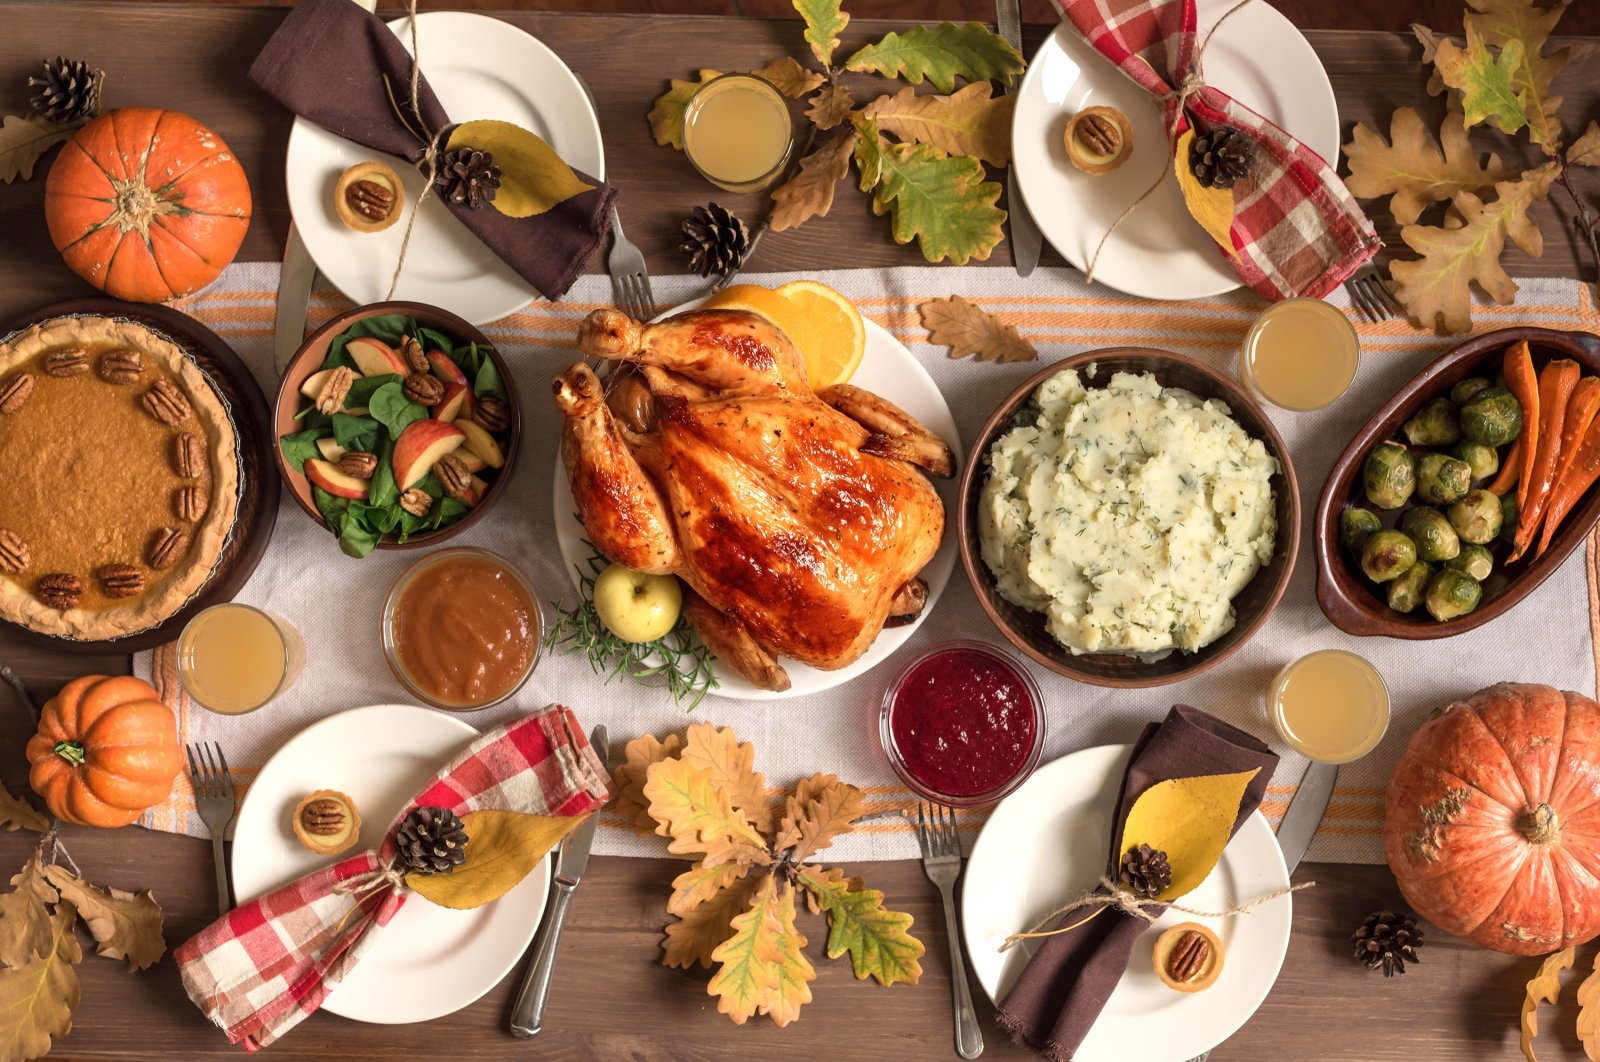 Go with some roasted turkey or chicken, two sides and a dessert for an intimate celebration of Thanksgiving. (Shutterstock Photo)